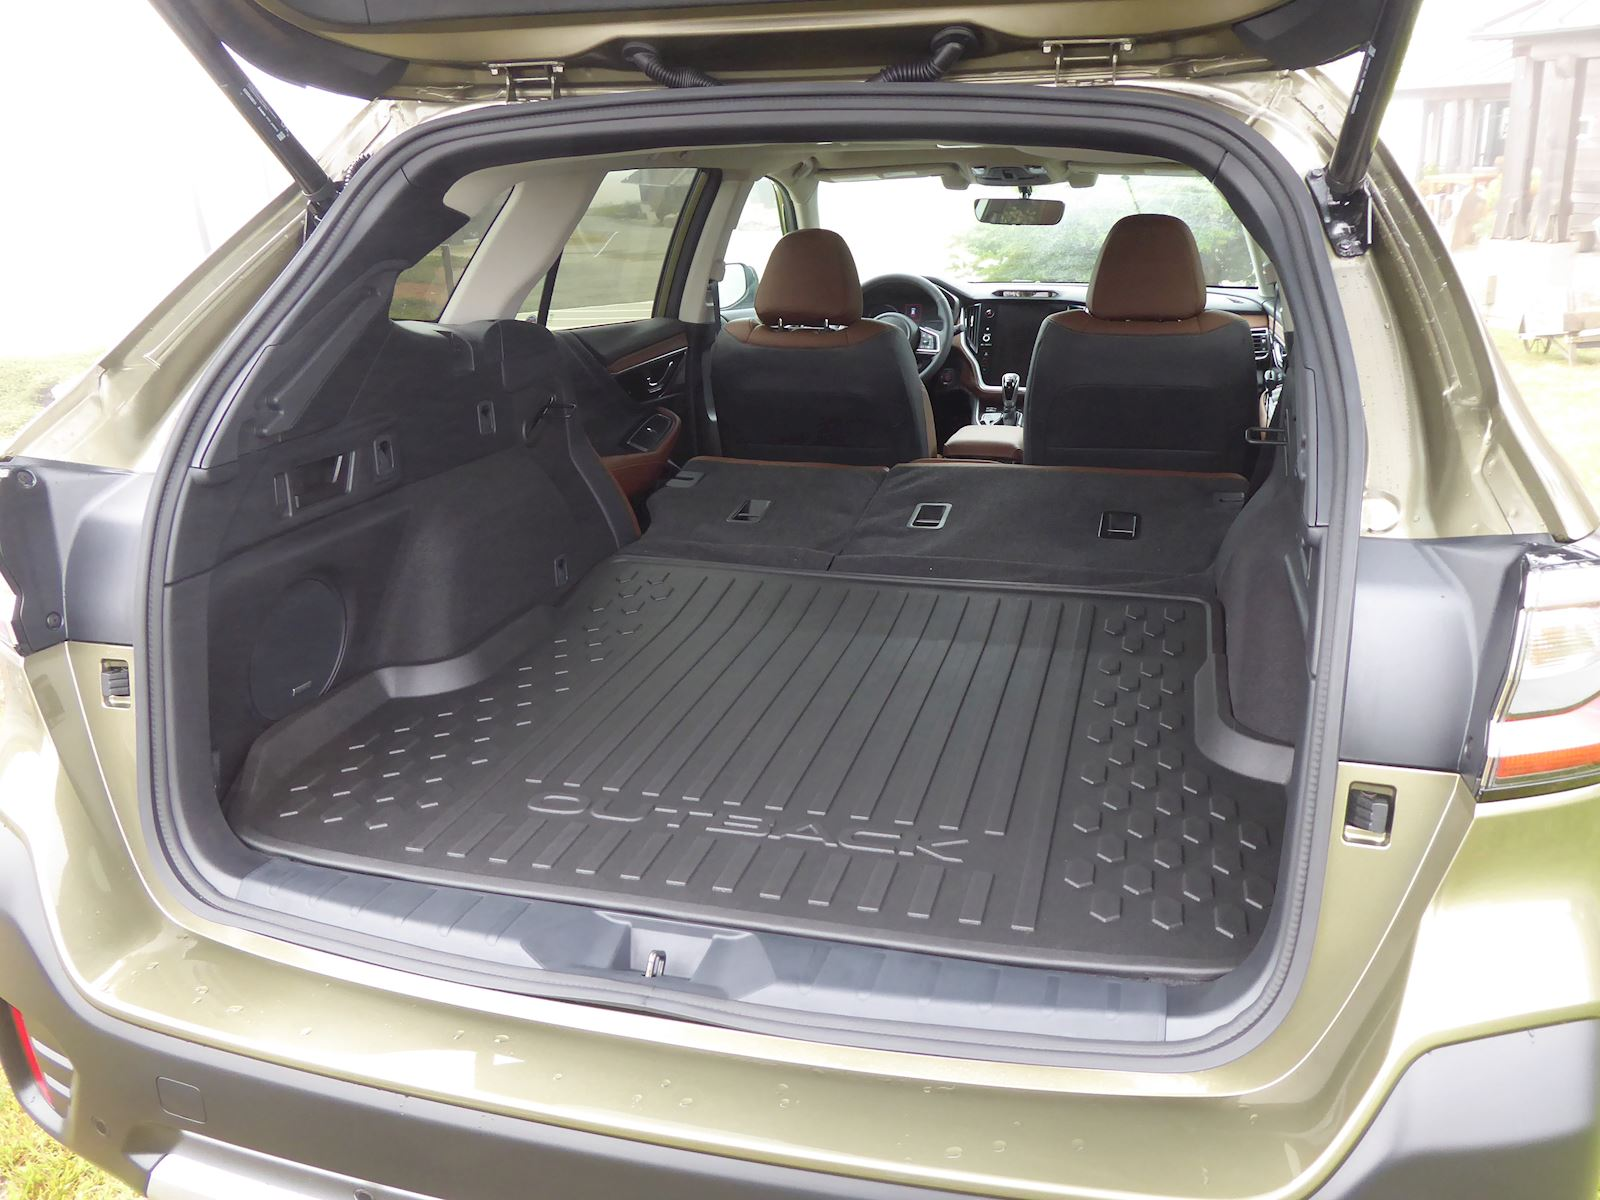 2020 Subaru Outback cargo space photo